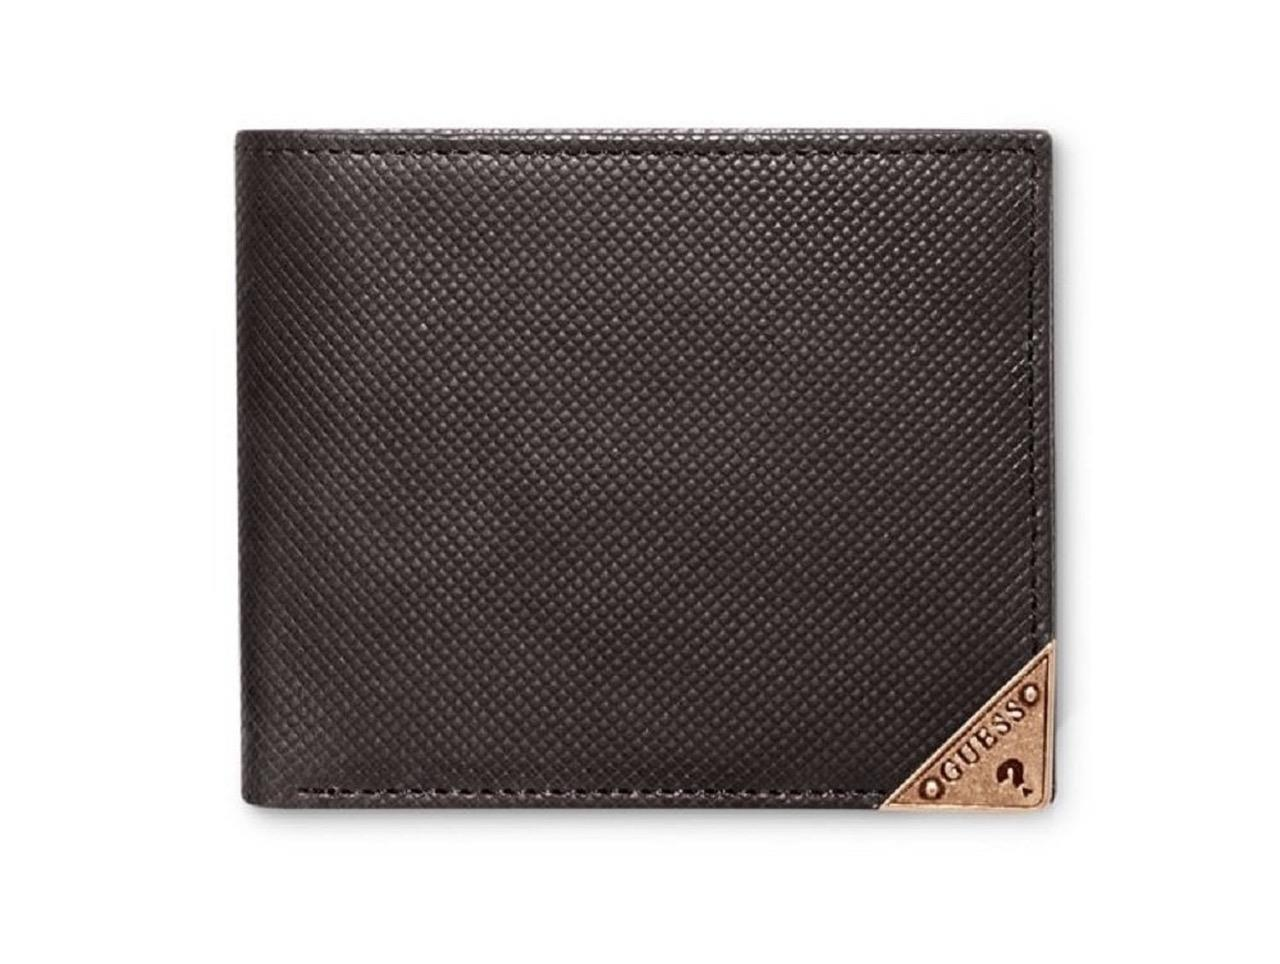 NEW GUESS MEN'S LEATHER DOUBLE BILLFOLD ID WALLET WASHED TOBACCO 31GU13X031